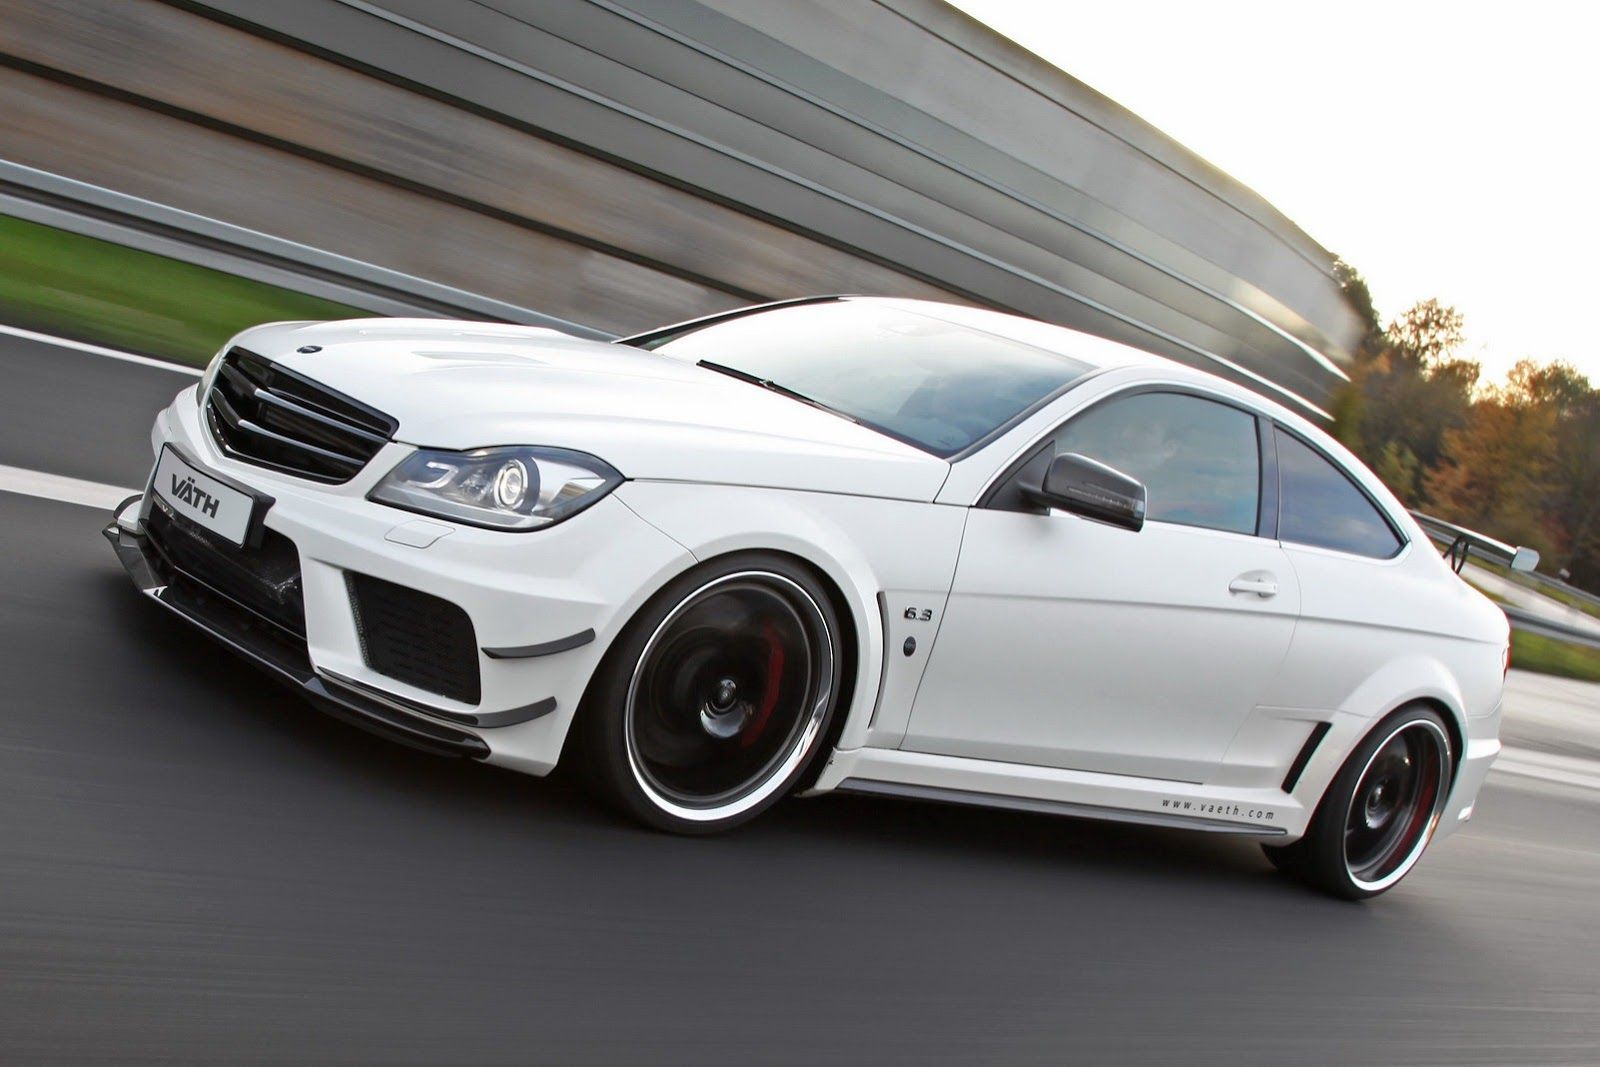 2016 mercedes c63 amg black series convertible redesign canada - Mercedes Benz C63 Amg Black Series White